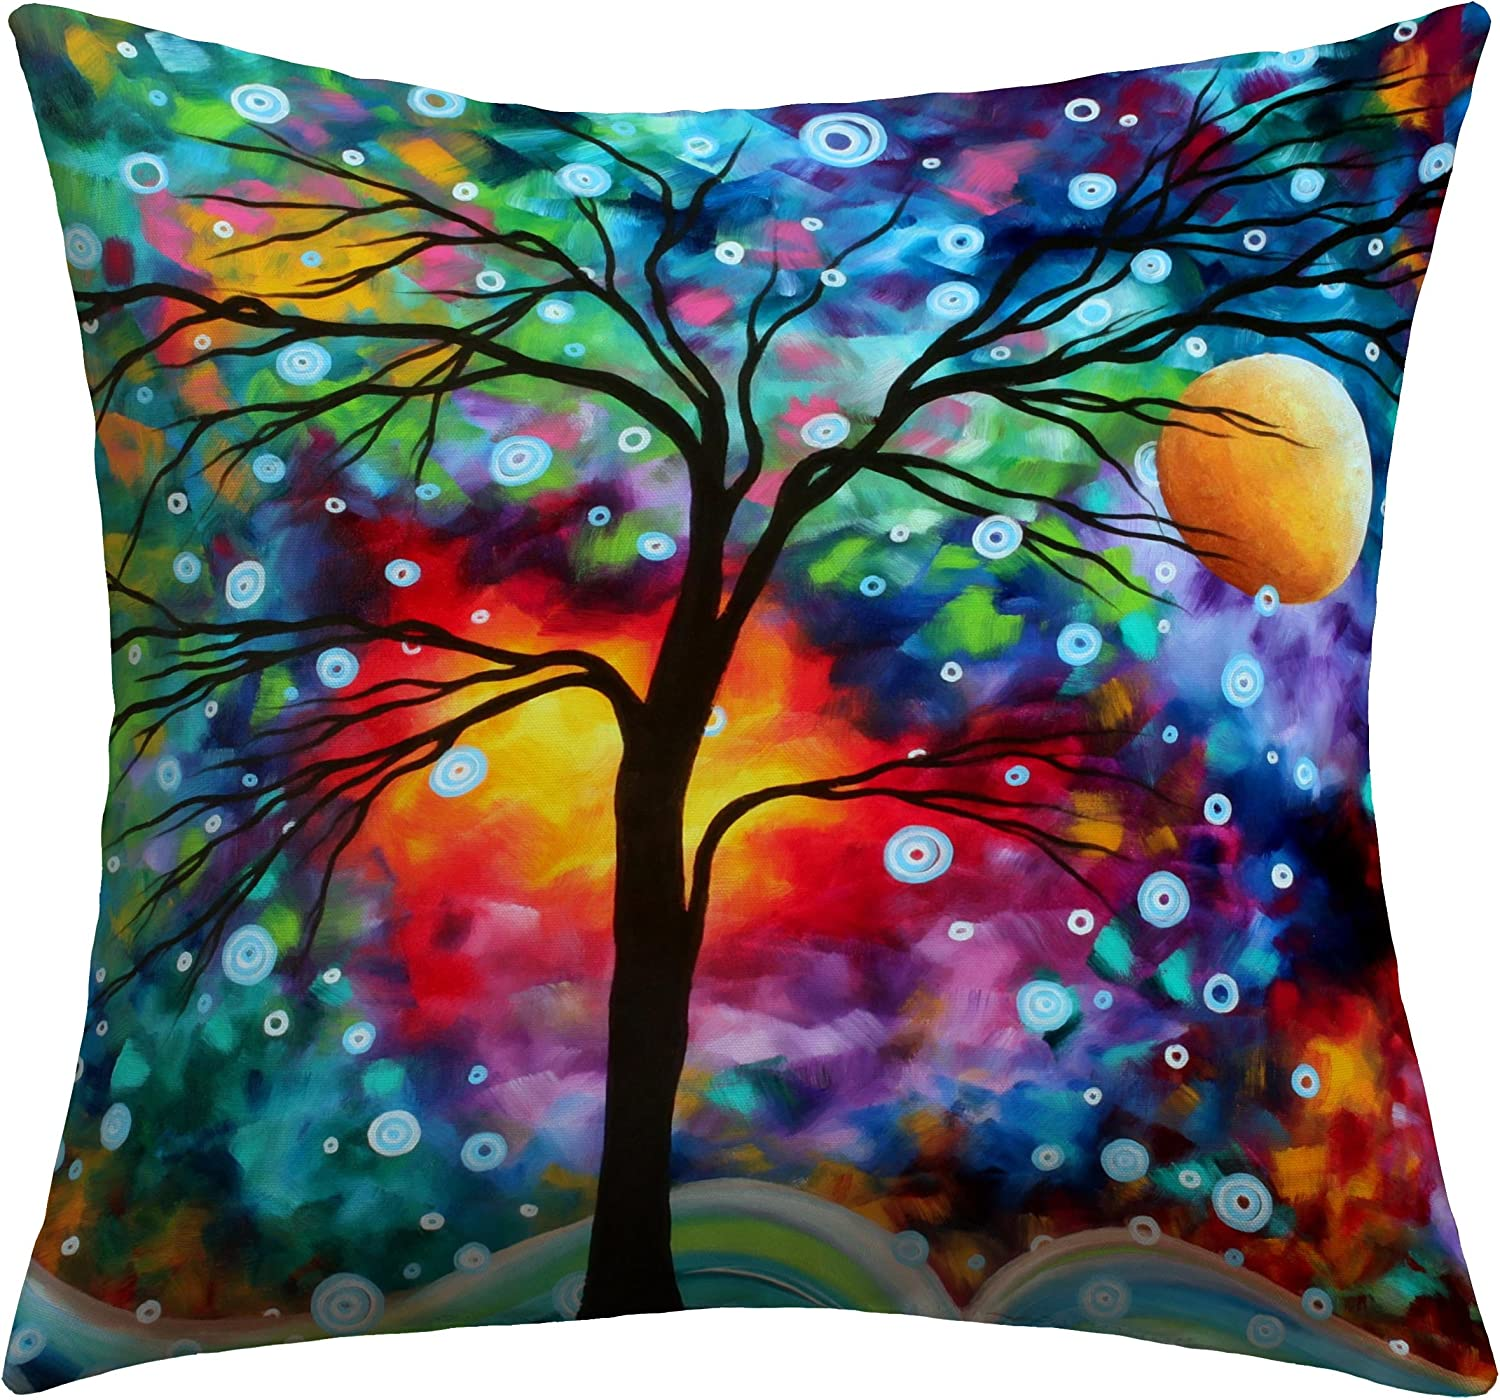 Deny Designs Madart Inc. A Moment In Time Outdoor Throw Pillow, 26 x 26